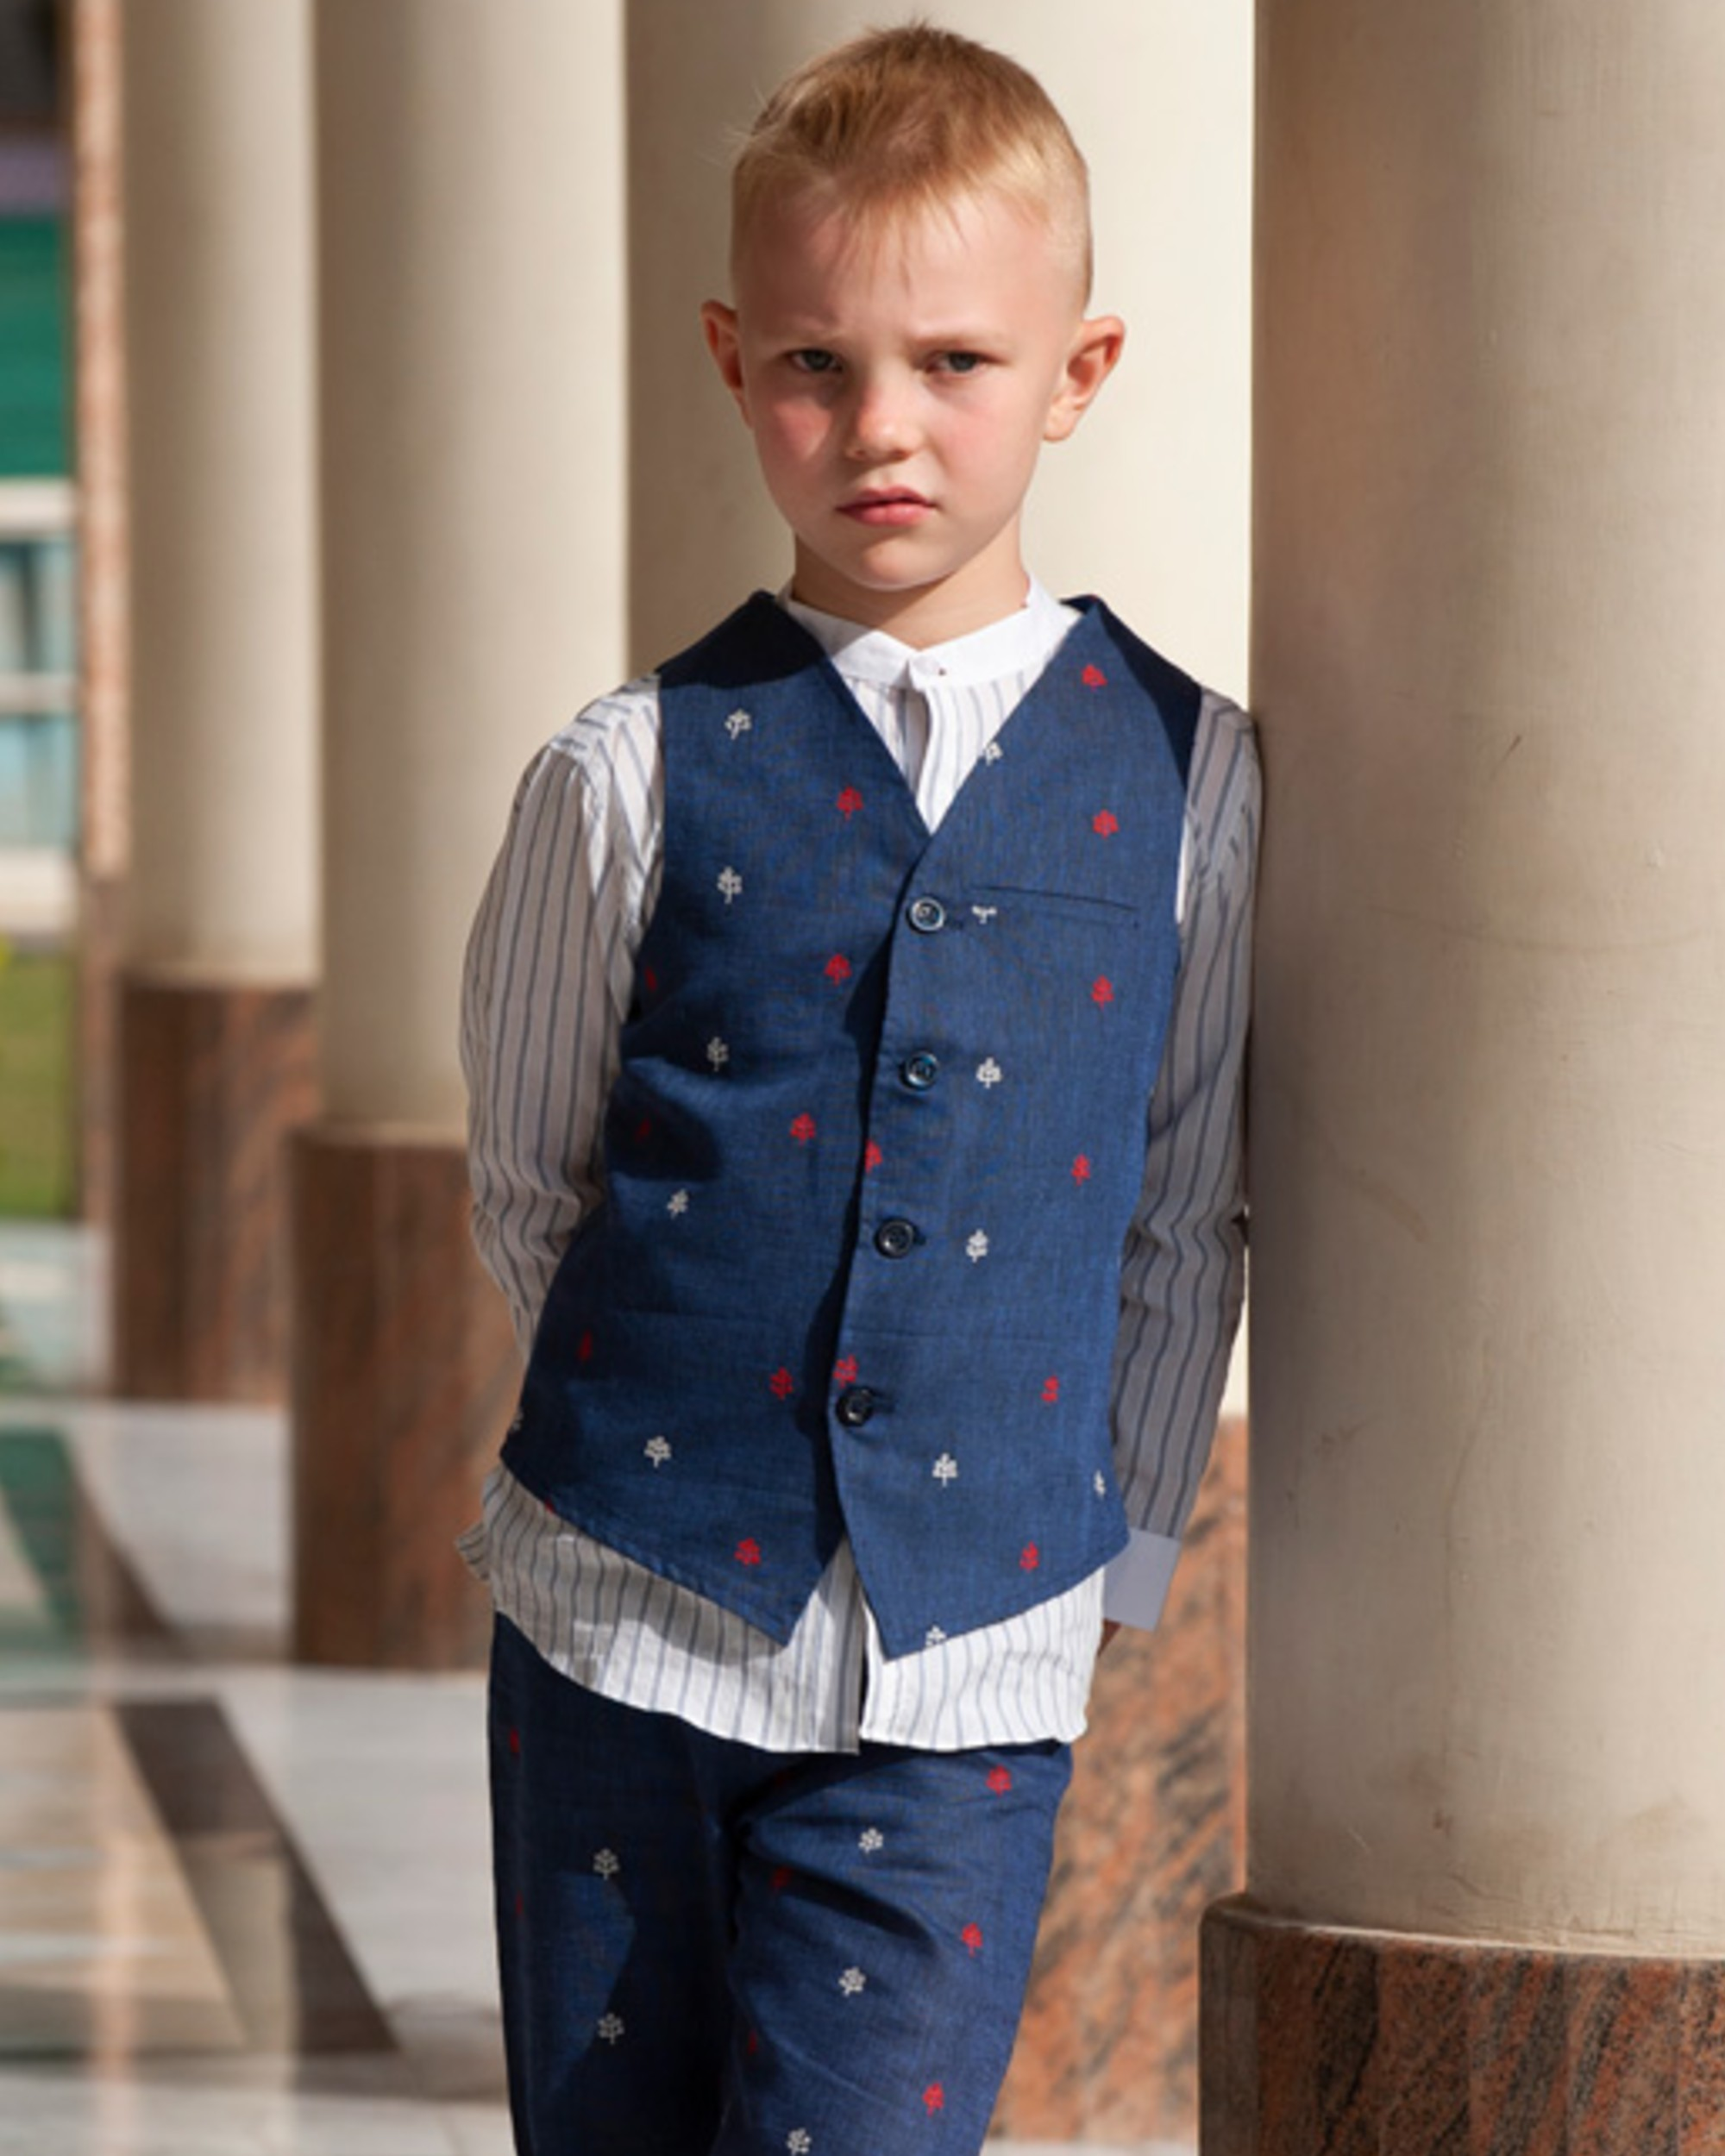 Indigo floral embroidered waistcoat